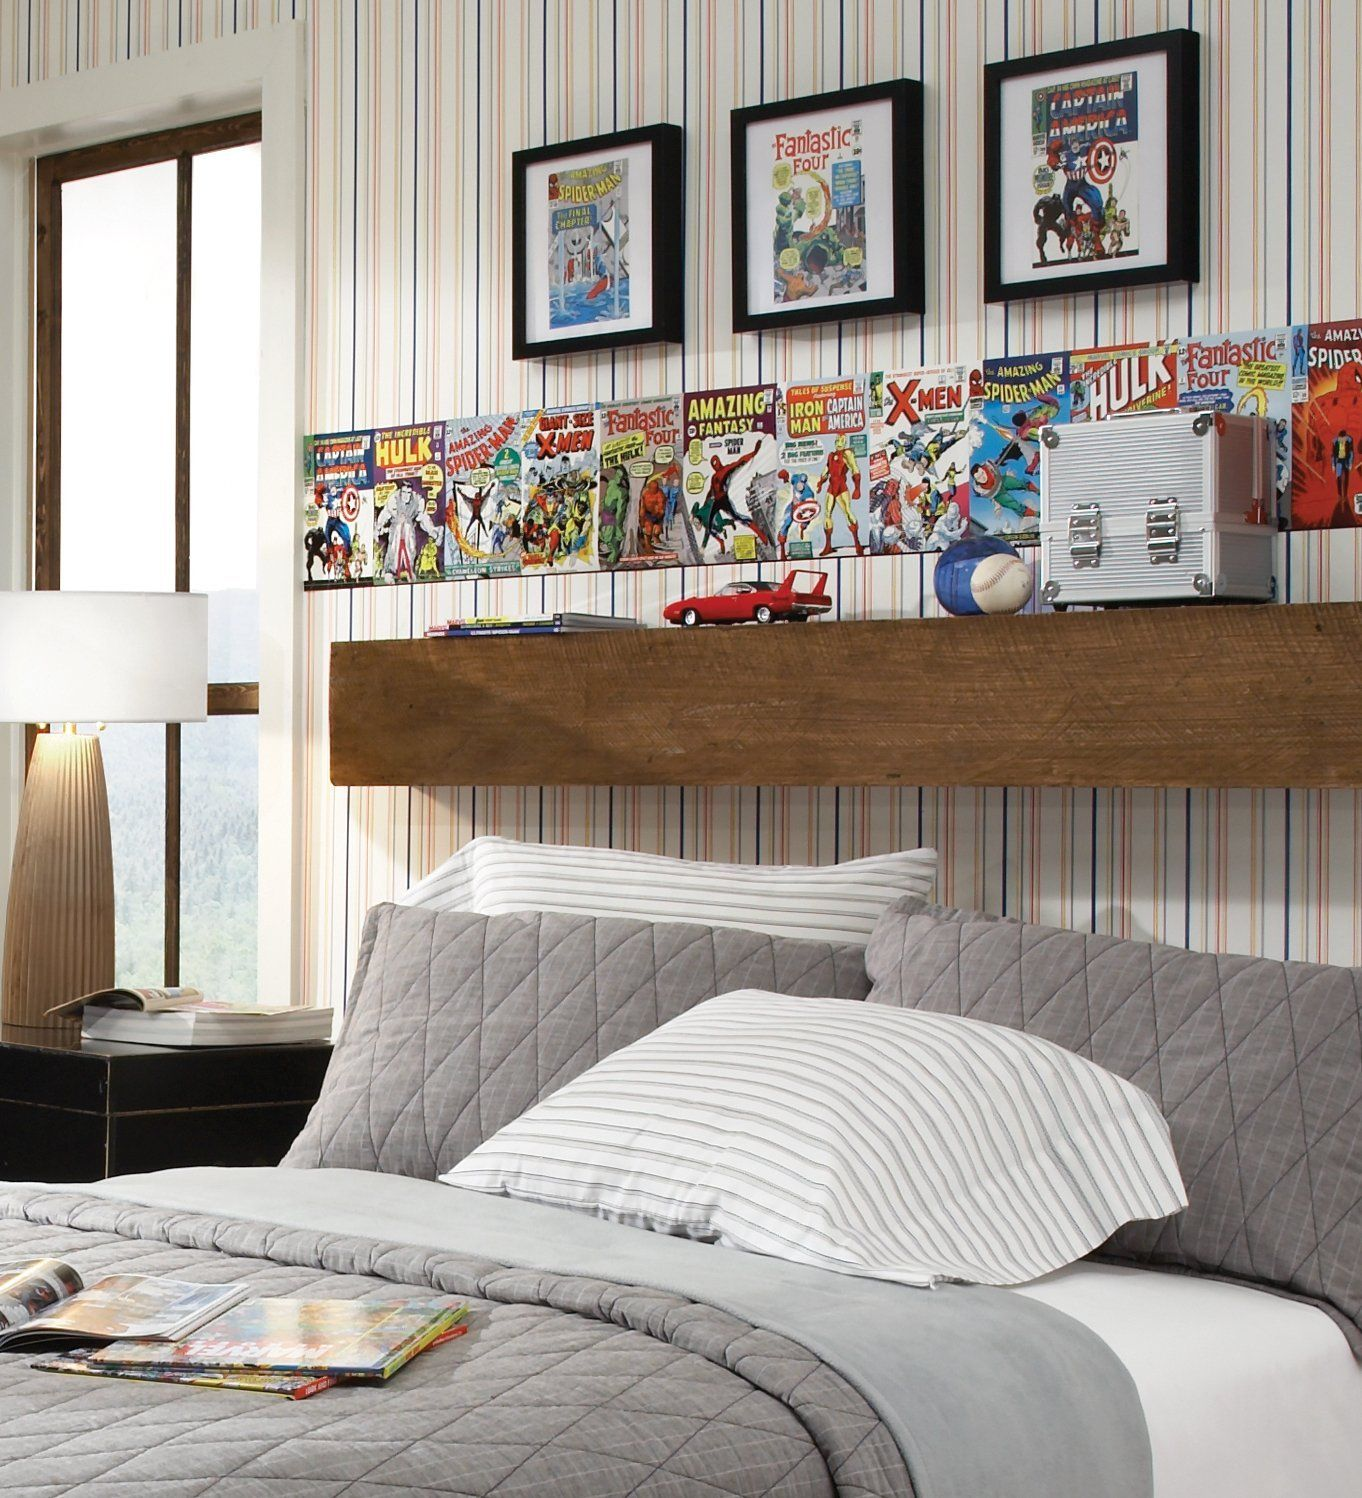 Wall Border Of Comic Books  Boys Room  Pinterest  Wall. Decorative Hose Stand. Rooms For Rent St Louis Mo. Stylish Home Decor. Ocean Themed Classroom Decorations. Decorative Wood Trim Moulding. Home Decorators Outdoor Furniture. Wild West Decorations. Baking Decorations